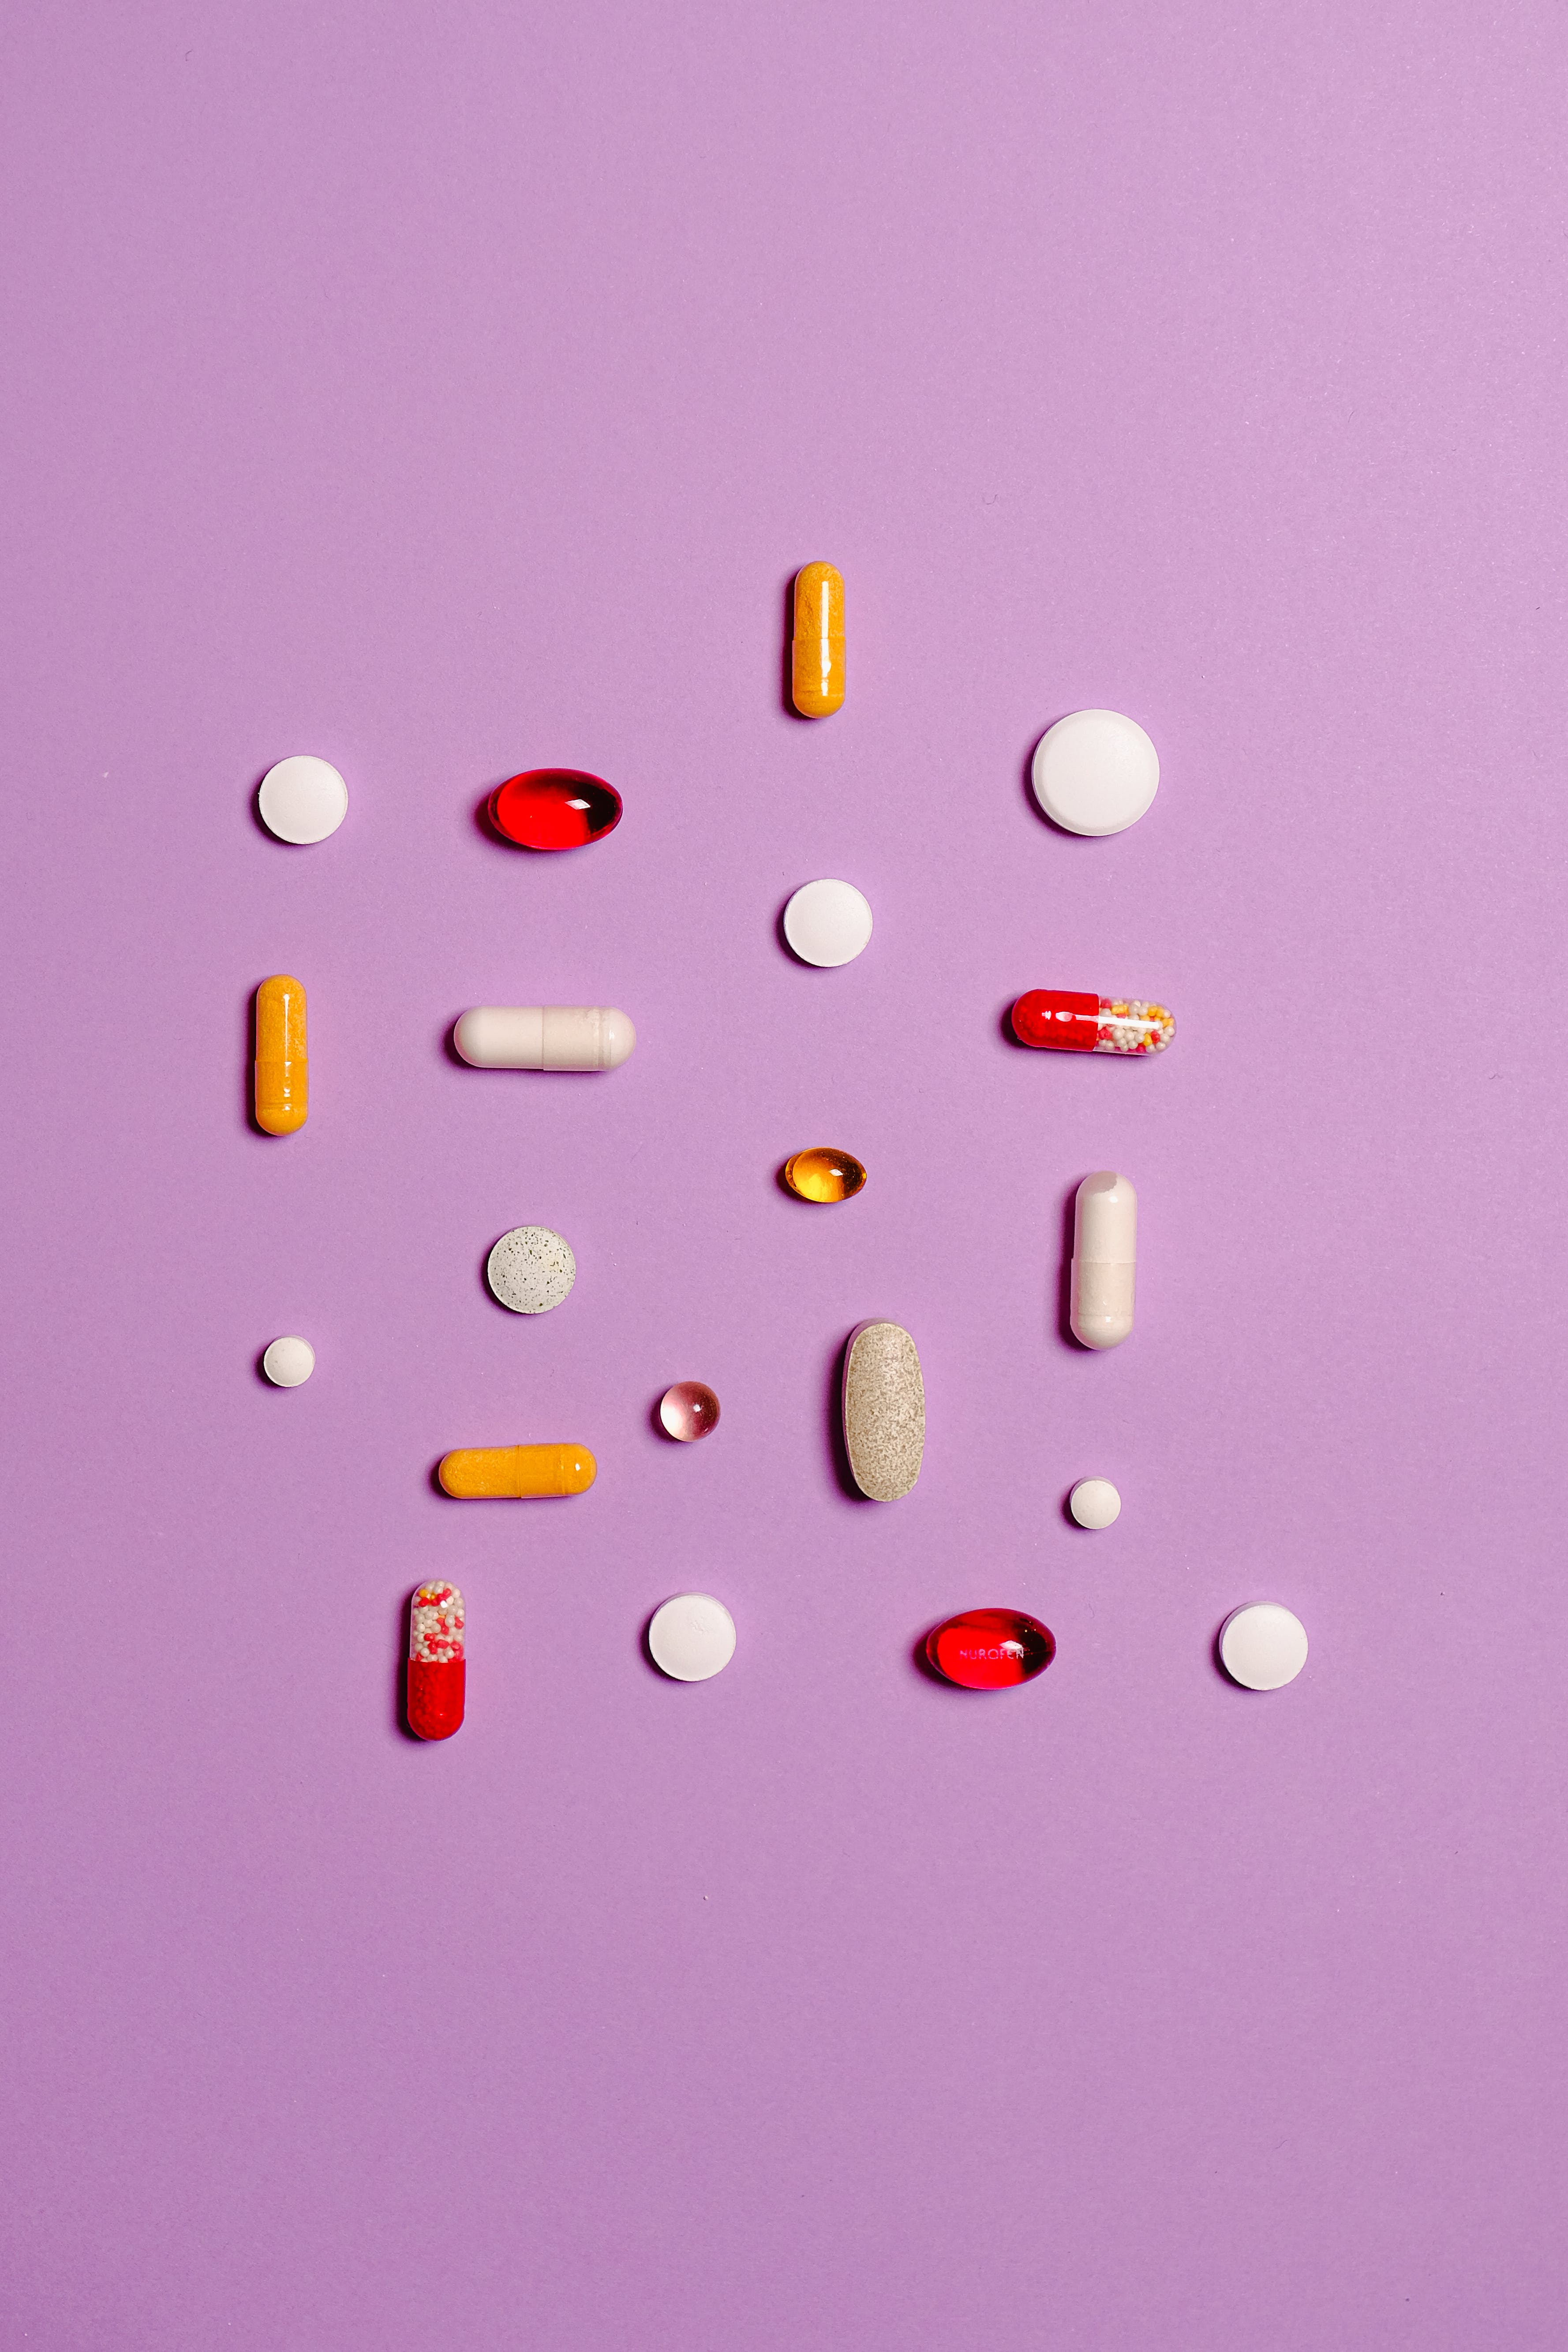 Medication Pills Isolated on Purple Background